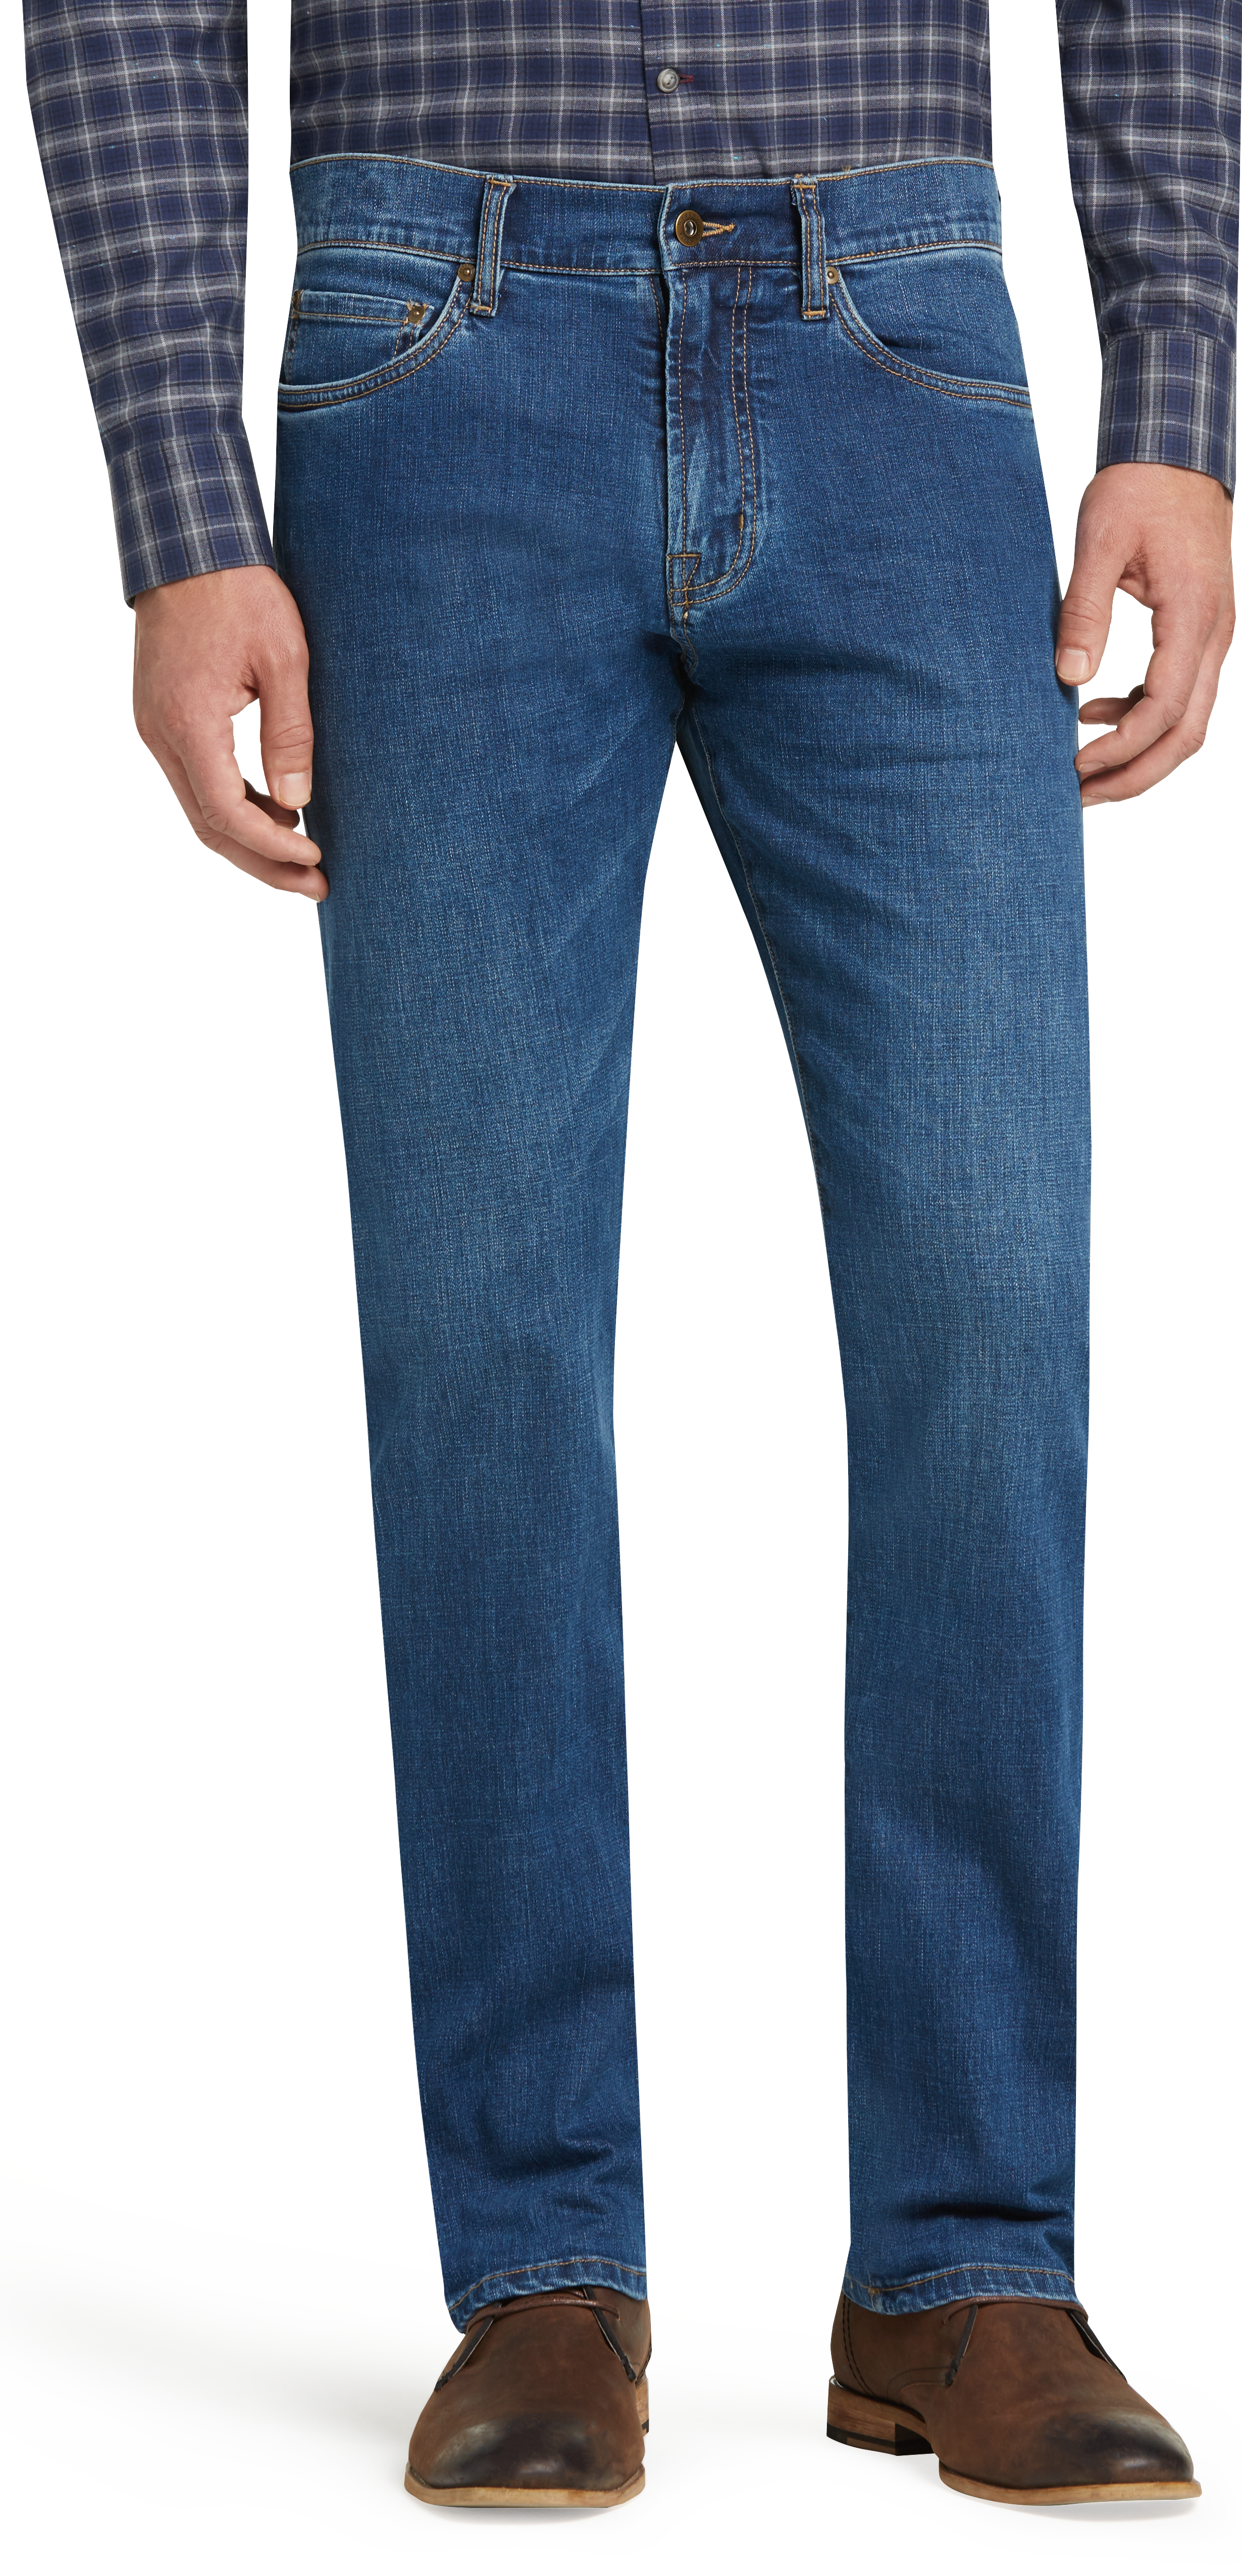 4825474d635 Reserve Collection Traditional Fit Jeans - All Pants | Jos A Bank